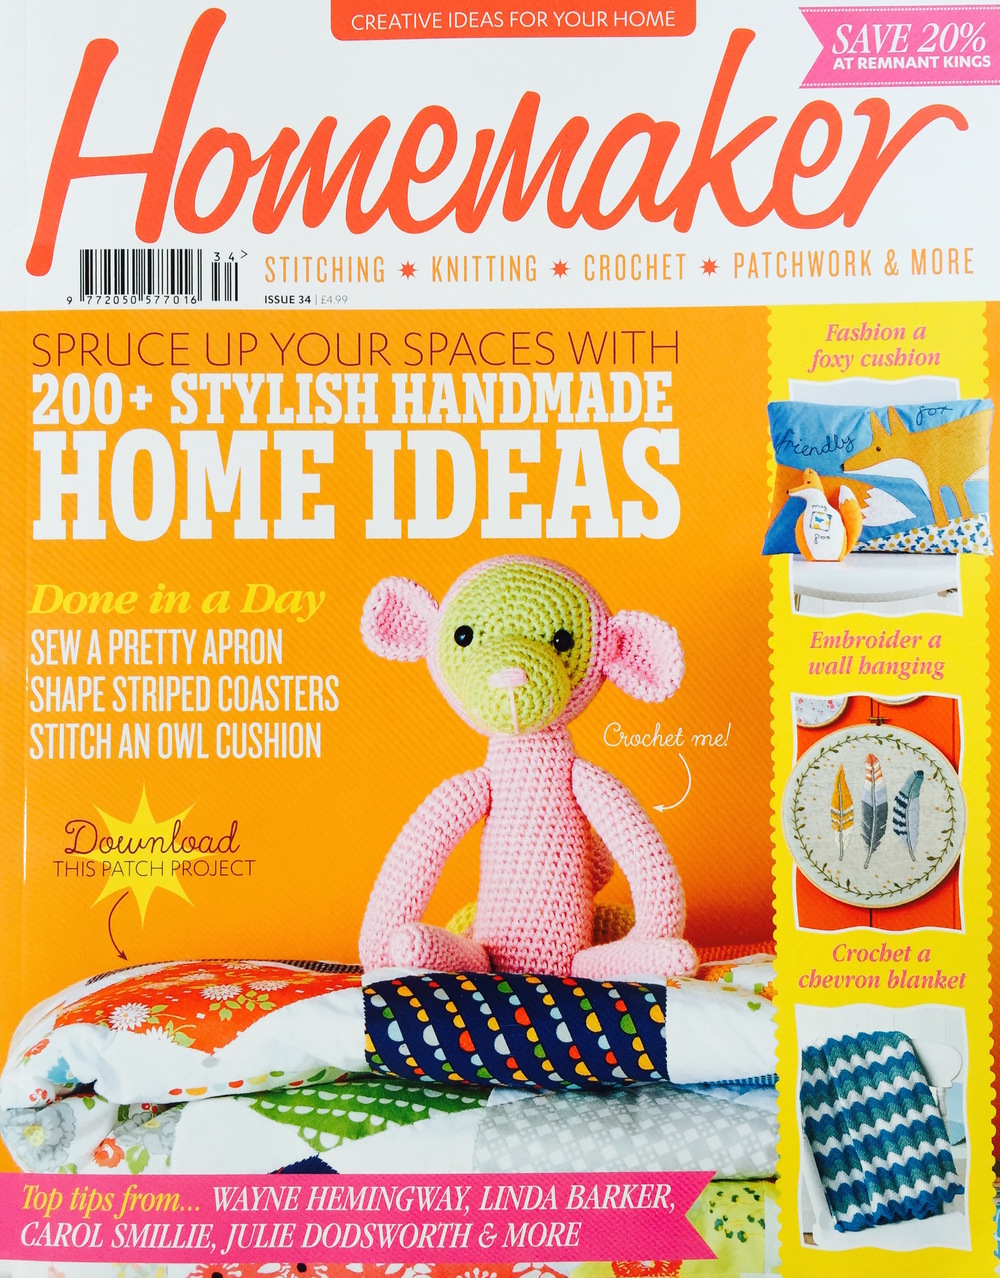 July 2015 - Homemaker Magazine - Issue 34. Fabric featured in 'Masterclass' feature